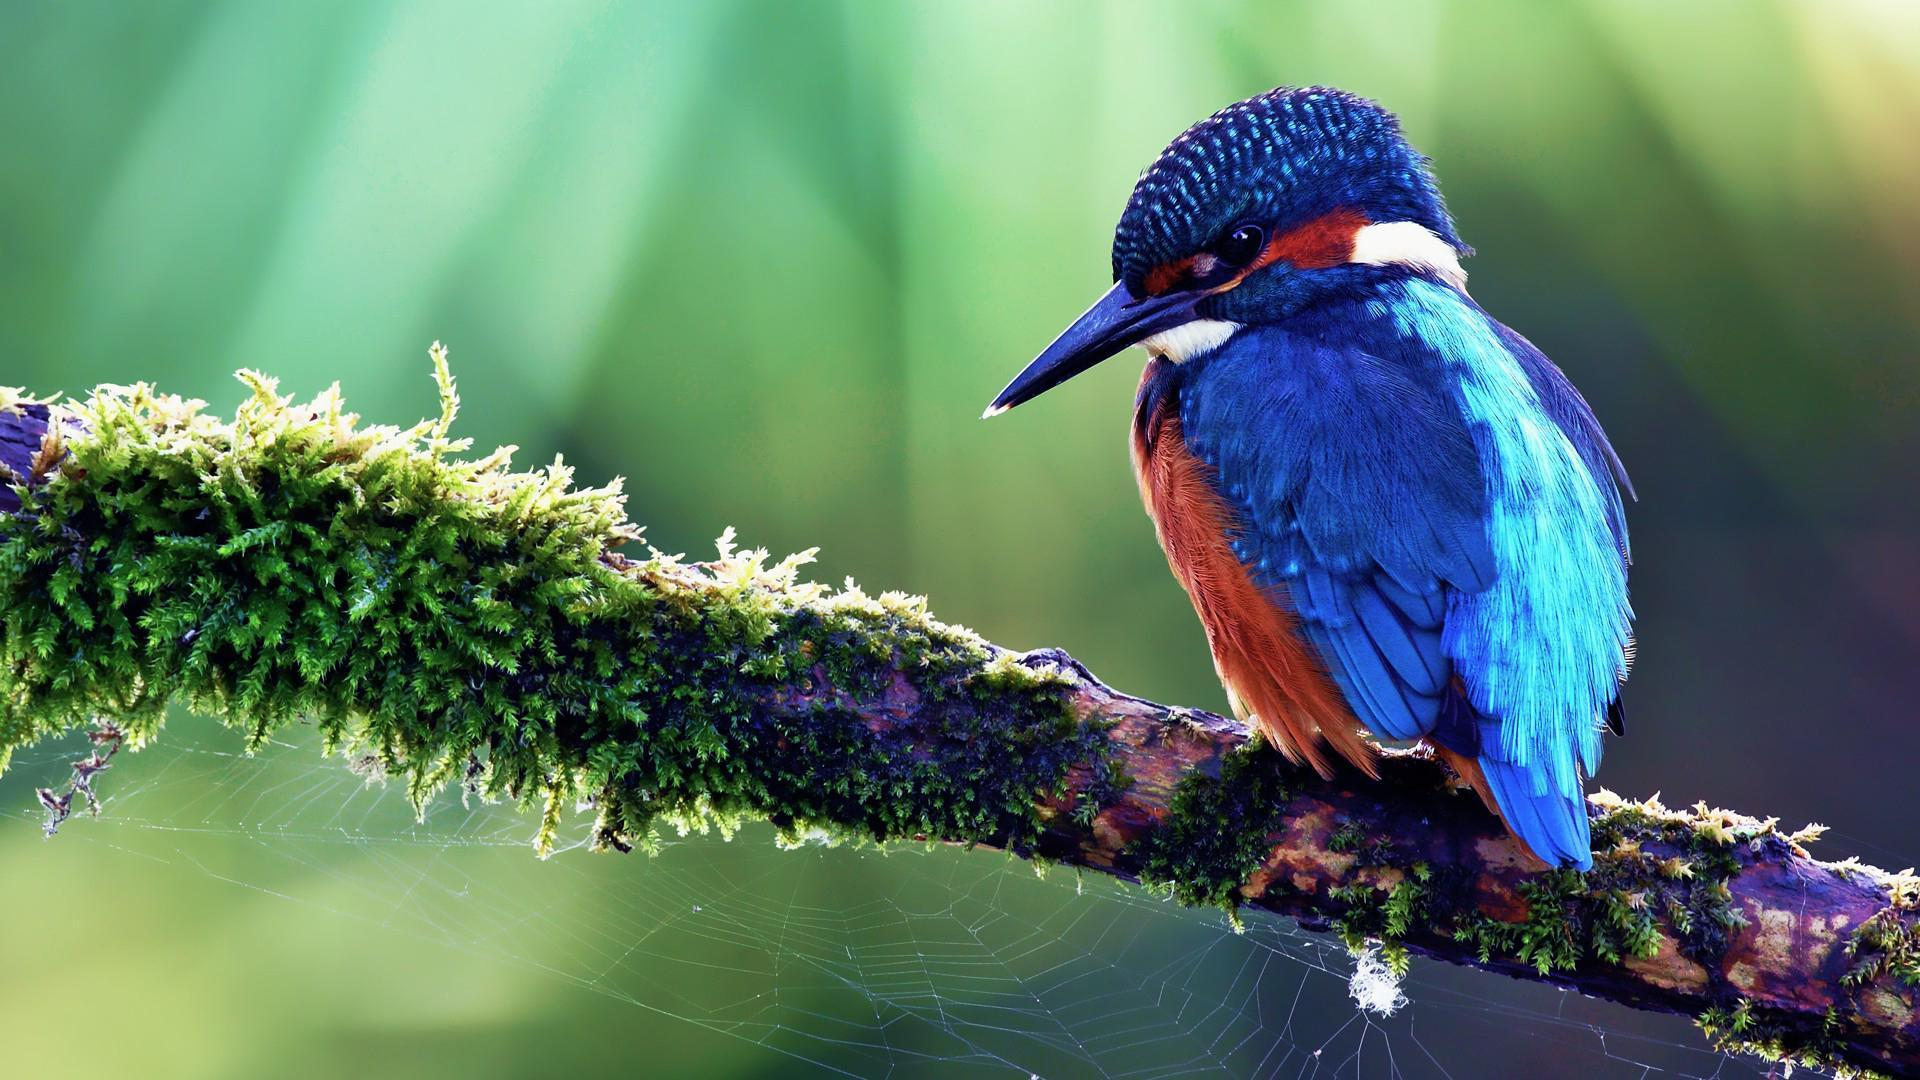 Kingfisher Wallpapers Top Free Kingfisher Backgrounds Wallpaperaccess